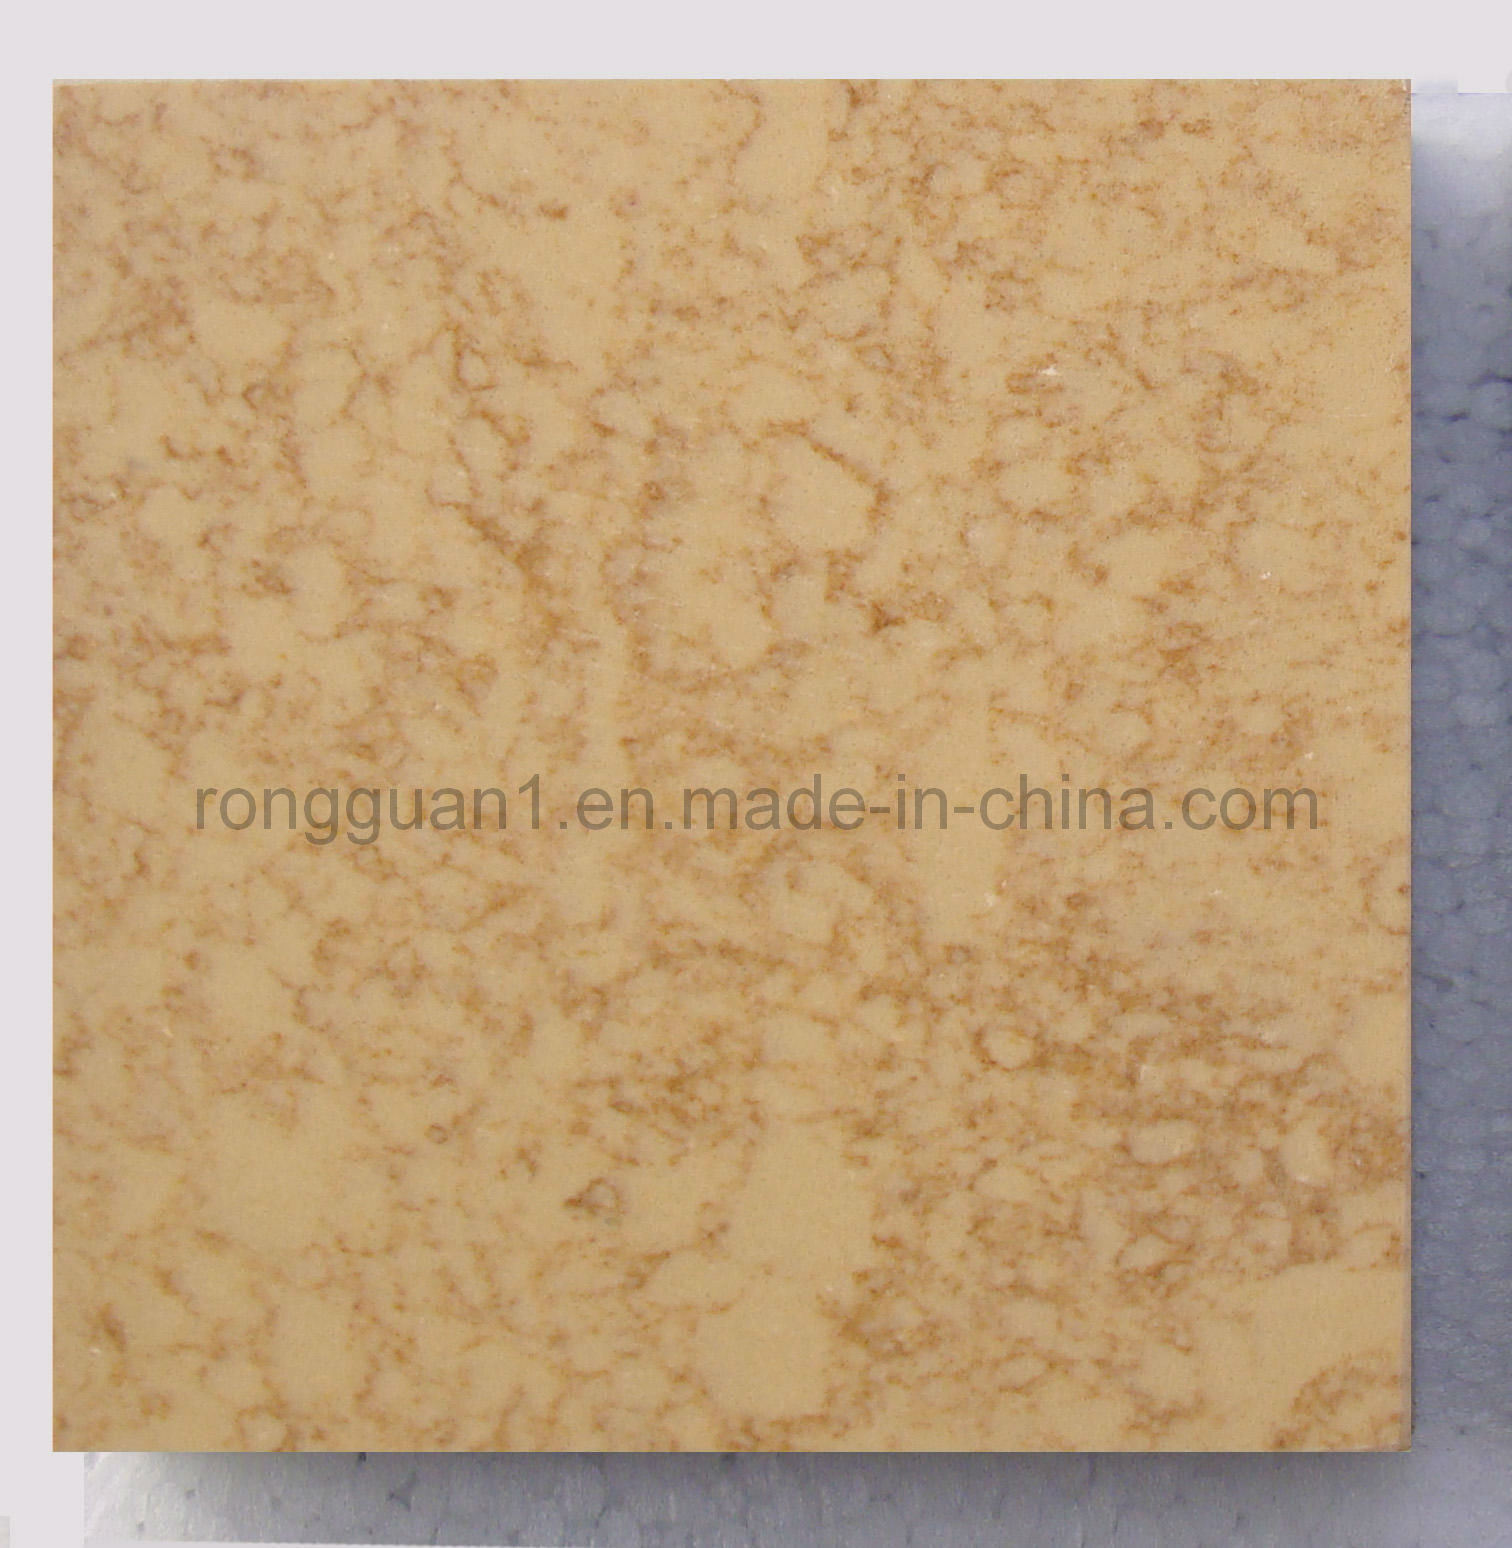 Stone Floor Tile & Wall Tile, Made of Artificial Quartz Stone